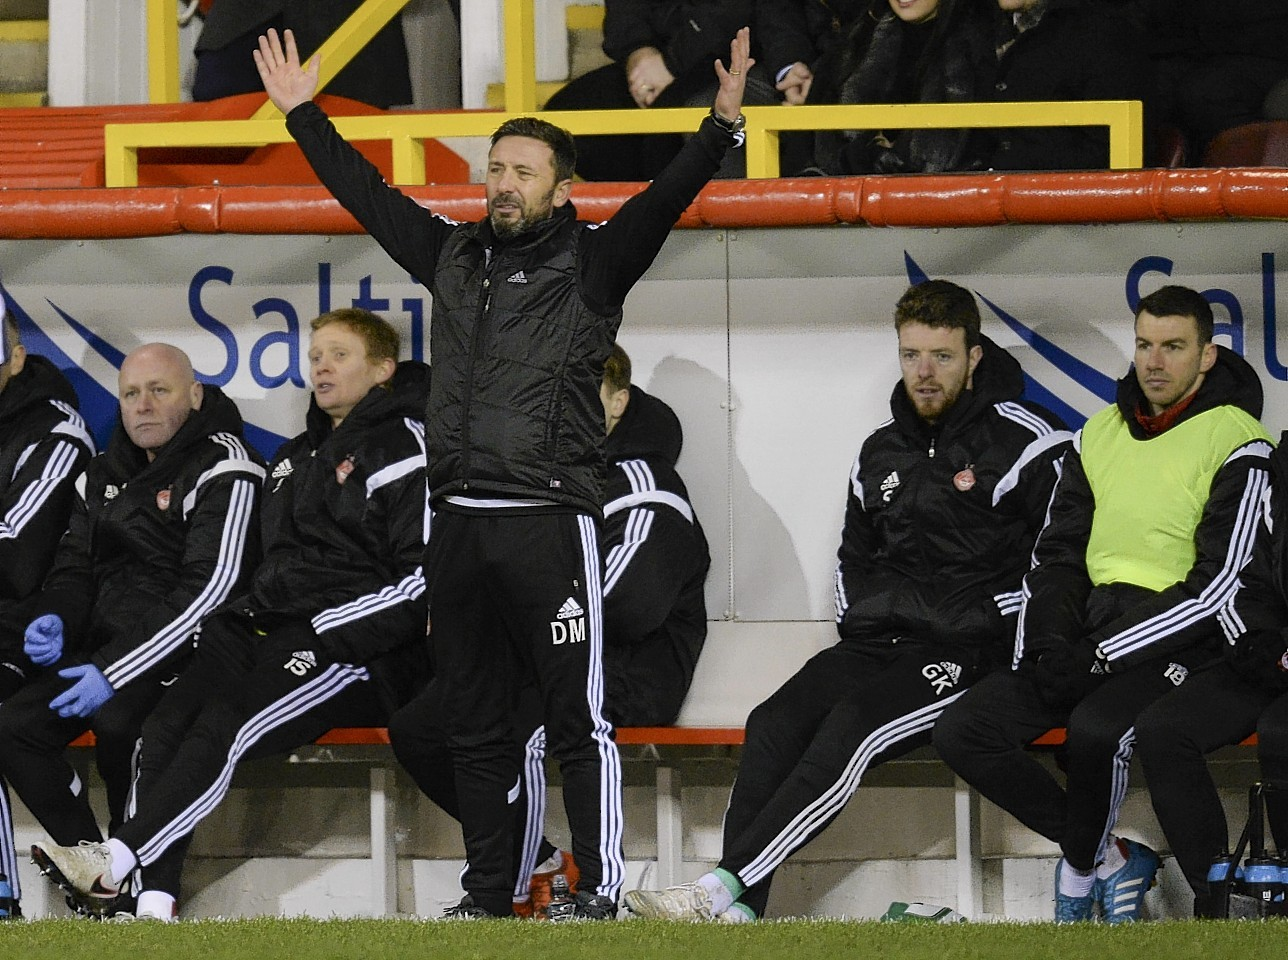 Aberdeen manager Derek McInnes encourages his players from the sidelines